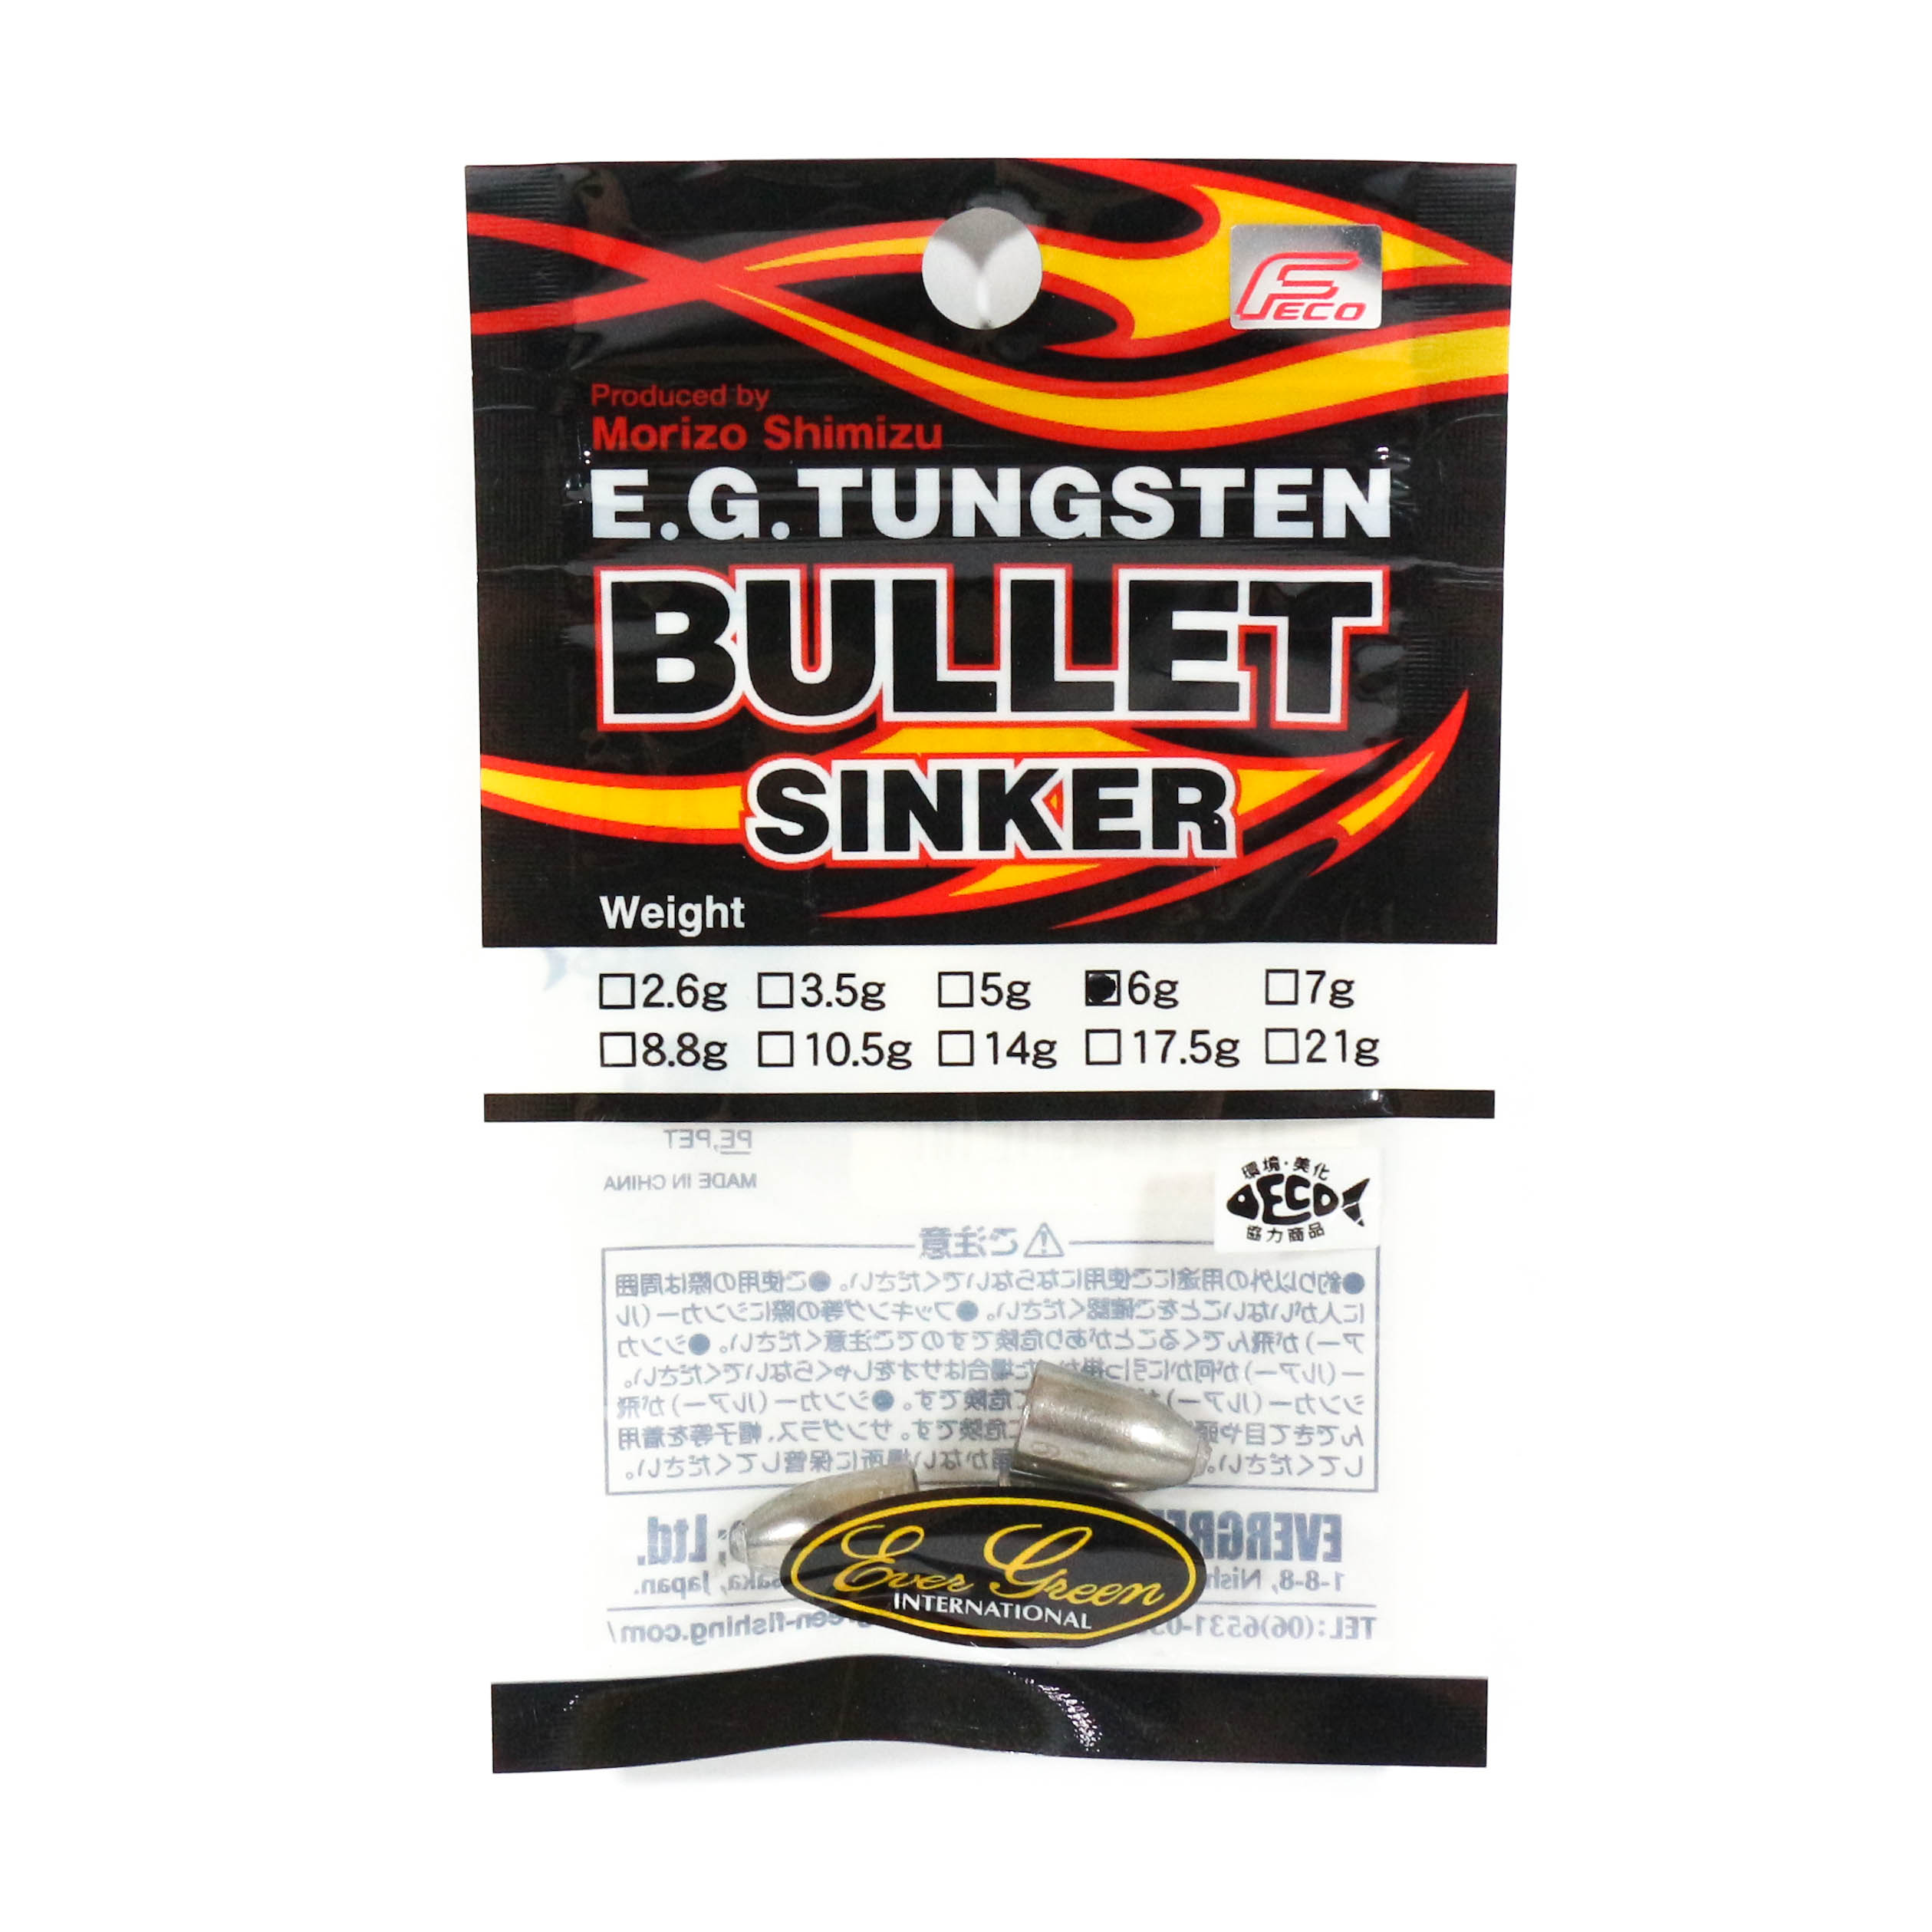 Evergreen Tungsten Bullet Sinker 7/32 oz (6 Grams) (1811)